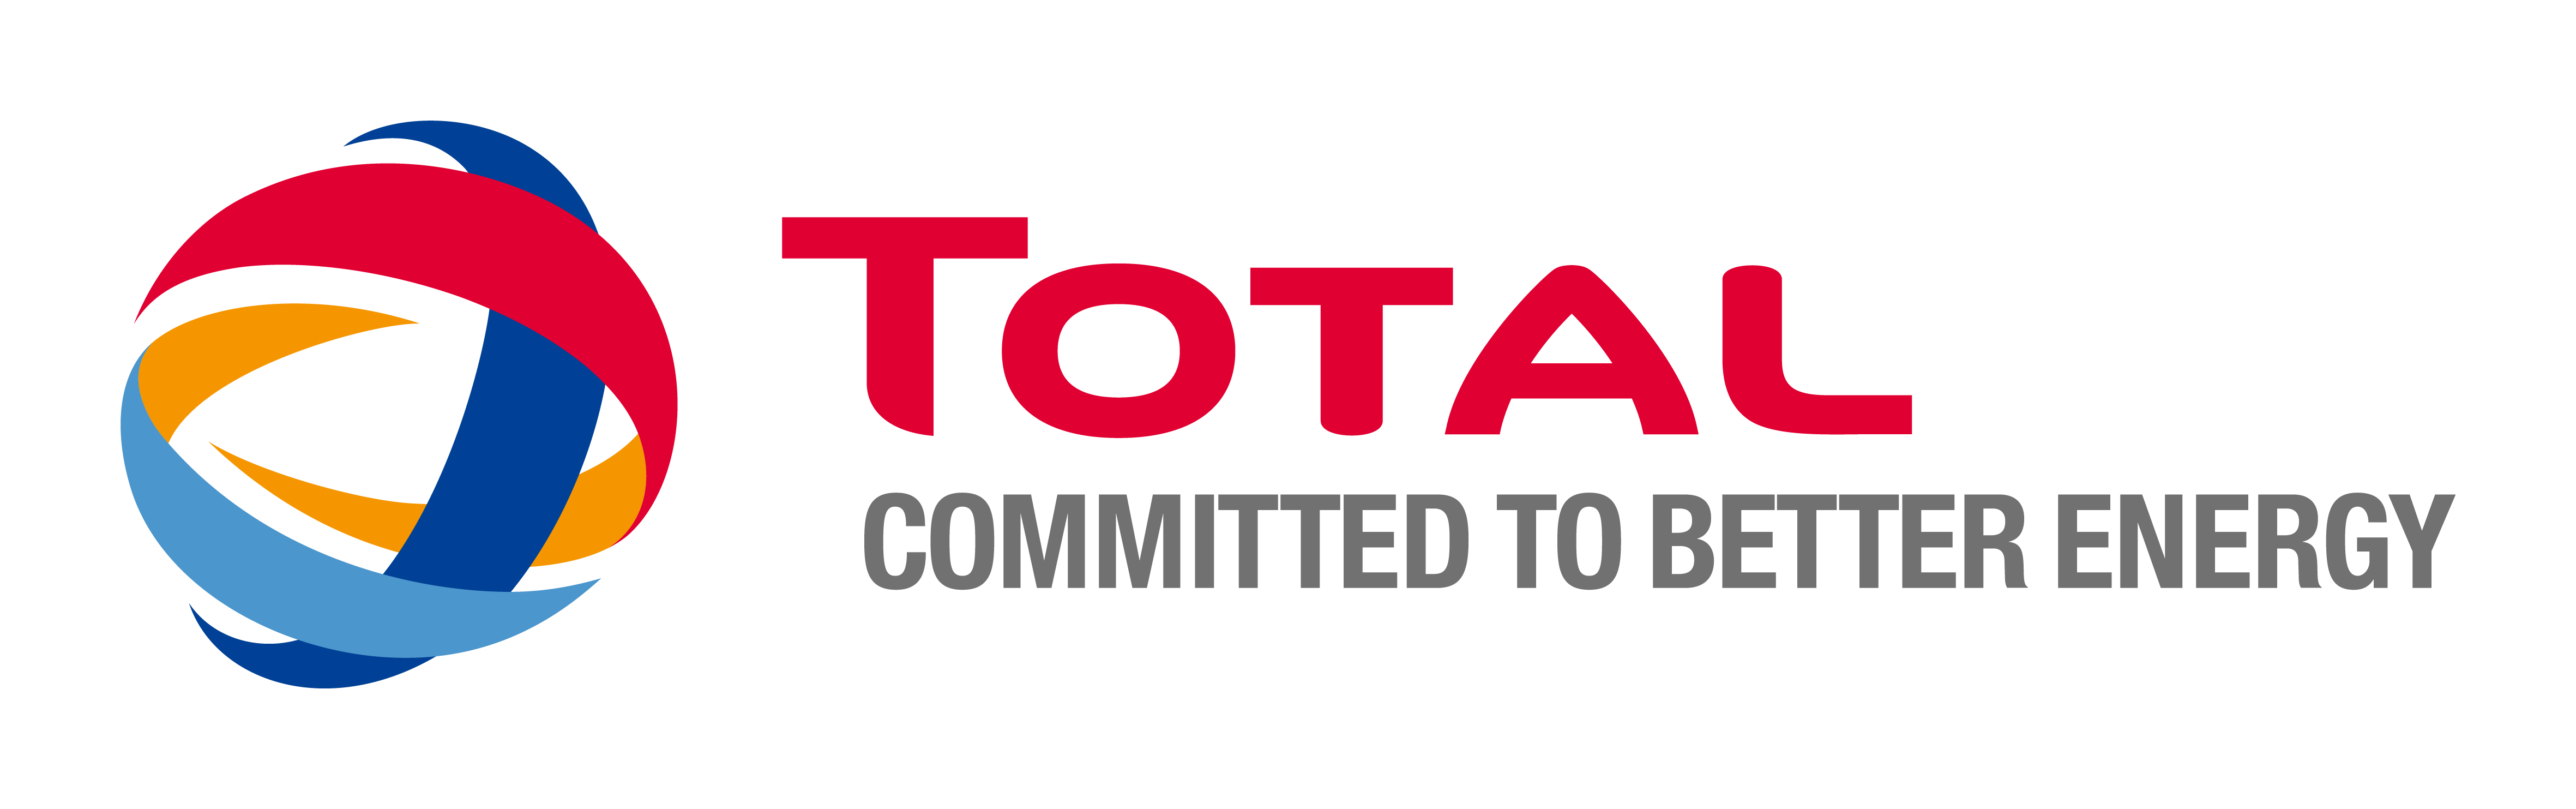 logo-TOTAL-new-2014-April